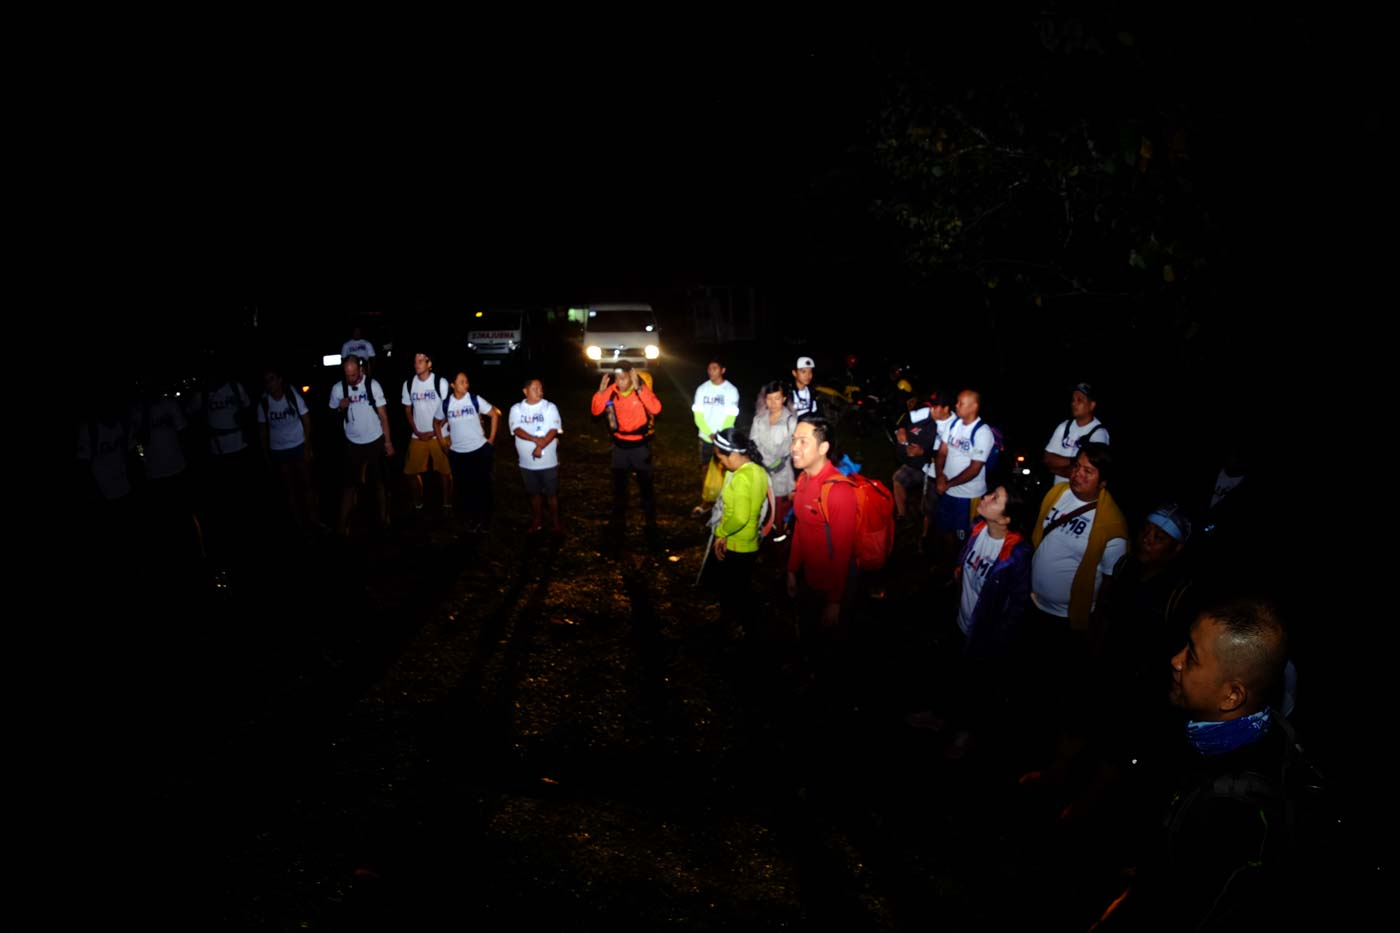 BASE CAMP. Members of the group gather at the base camp in Barangay Itum, Mambajao on March 23,2019. Photo by Bobby Lagsa/Rappler